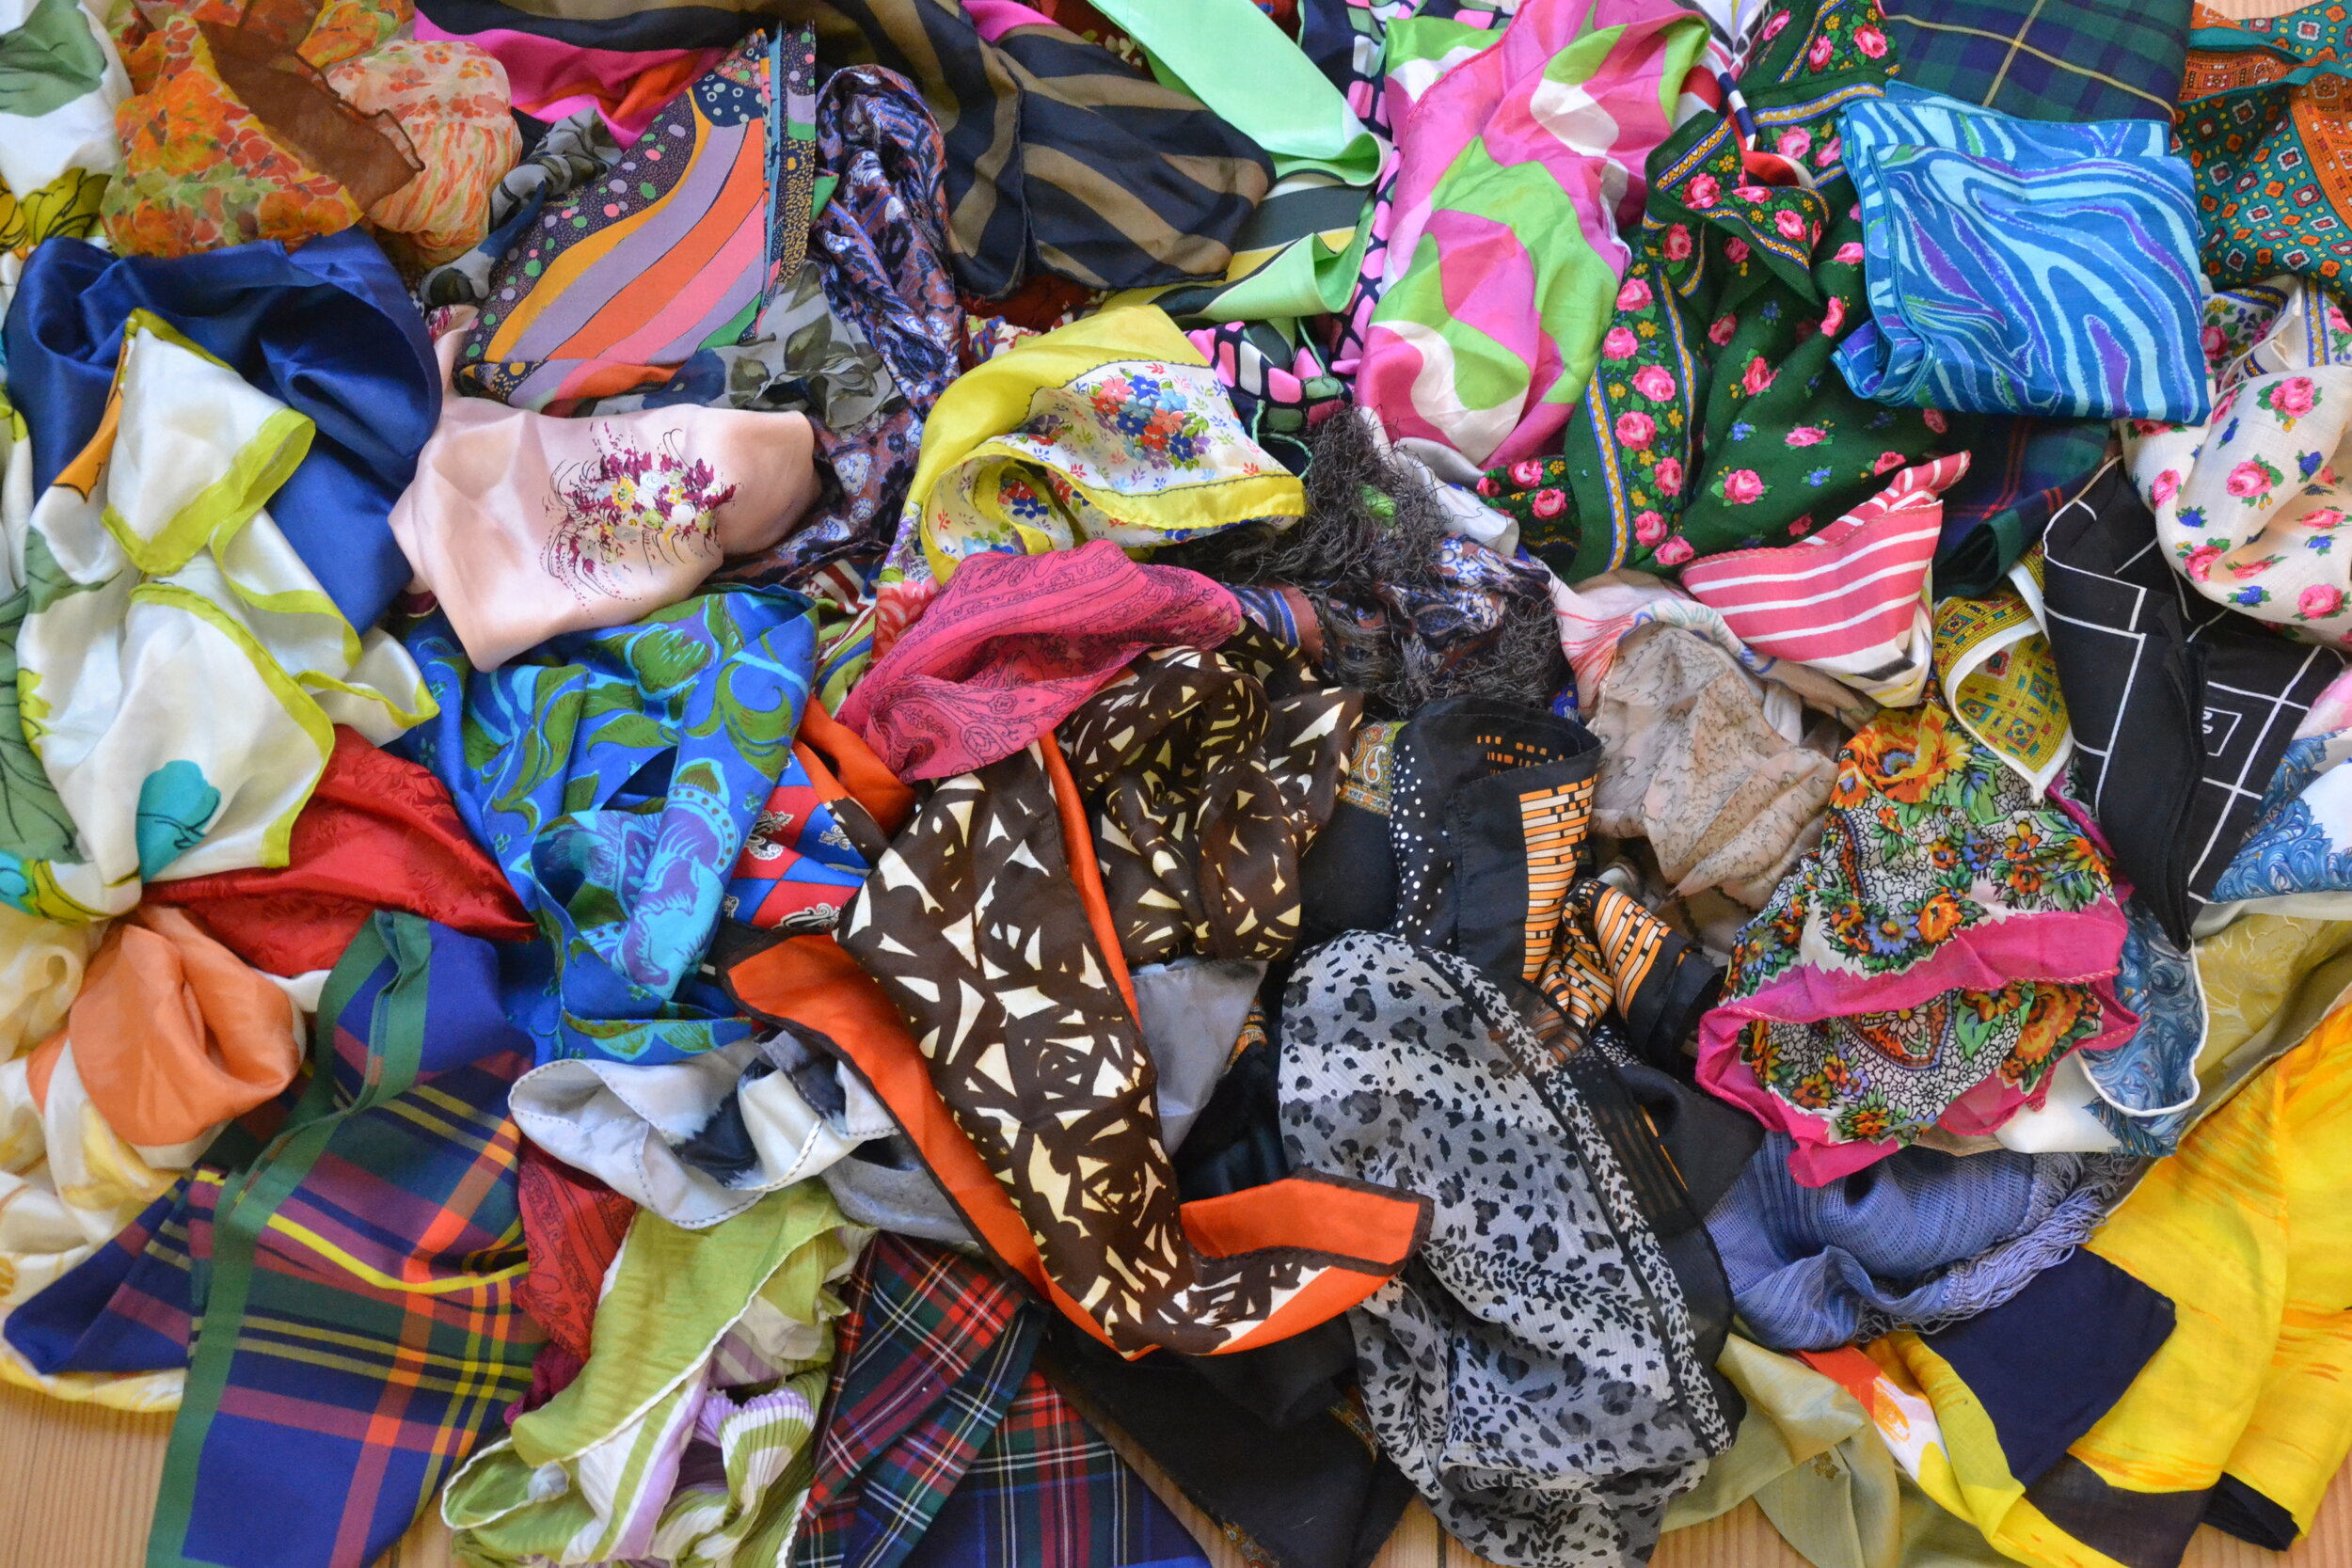 Accessories Bargain Pop Up October 17 & 18 - $3 to $10 vintage and designer scarves and handkerchiefs, neckties, belts, and gloves!October 17th & 18th 10:30 am - 2:30 pm